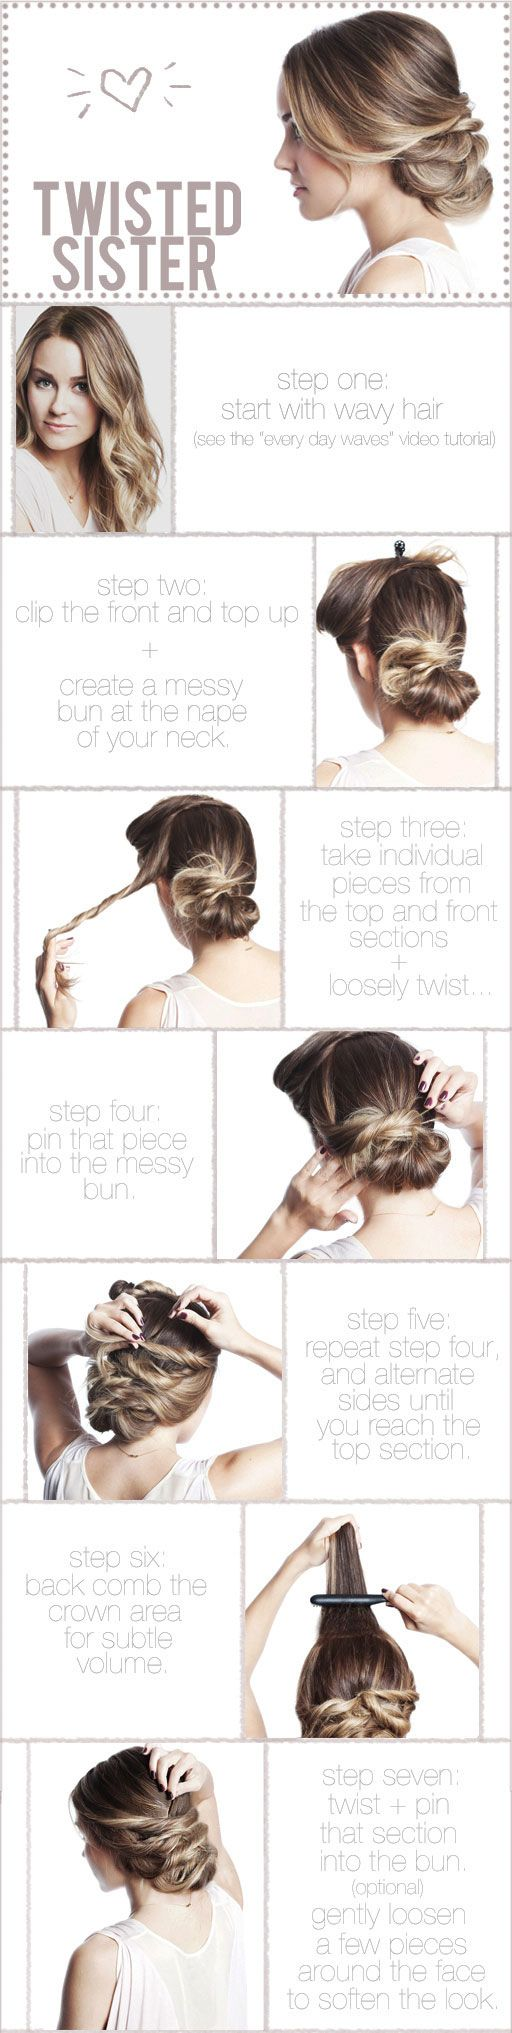 Can't wait until my hair is long enough!!! Need to find myself someone to test these on!